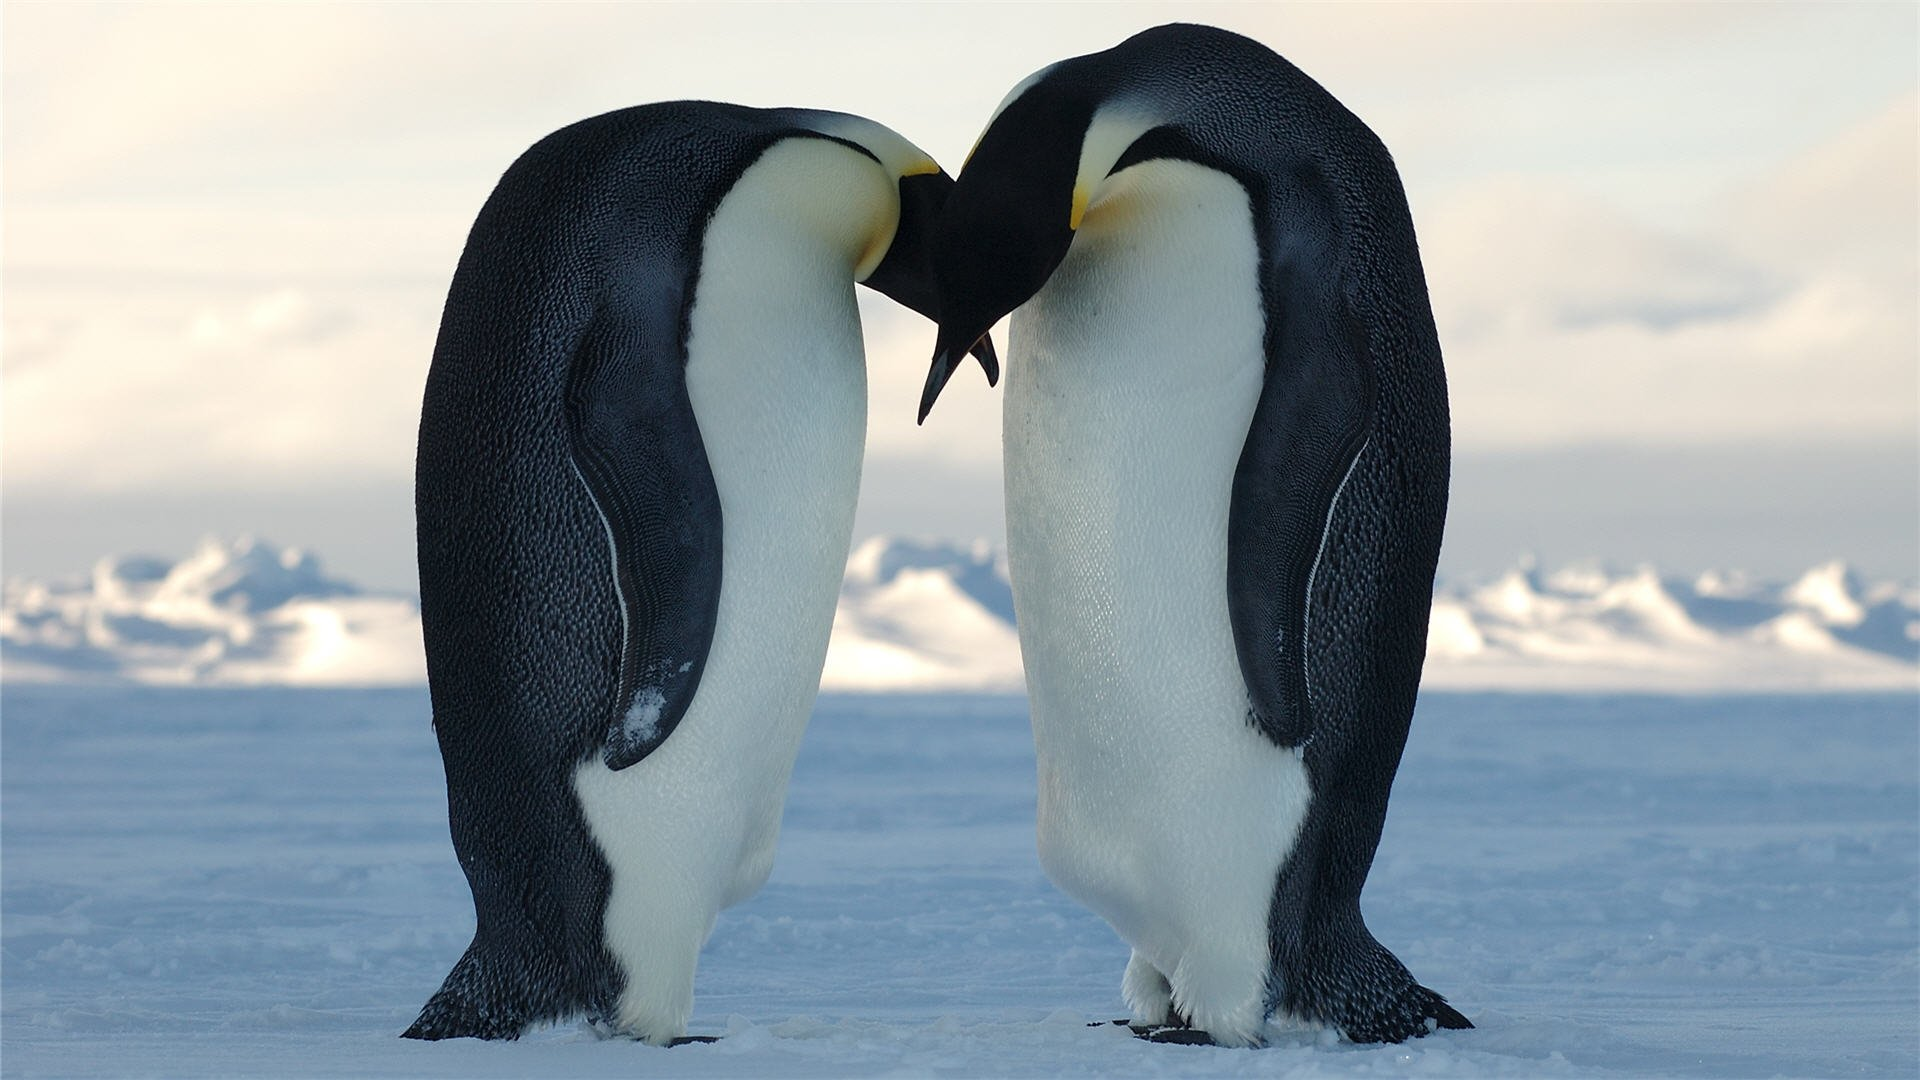 Download 1920x1080 HD Wallpaper penguin couple snow romantic 1920x1080